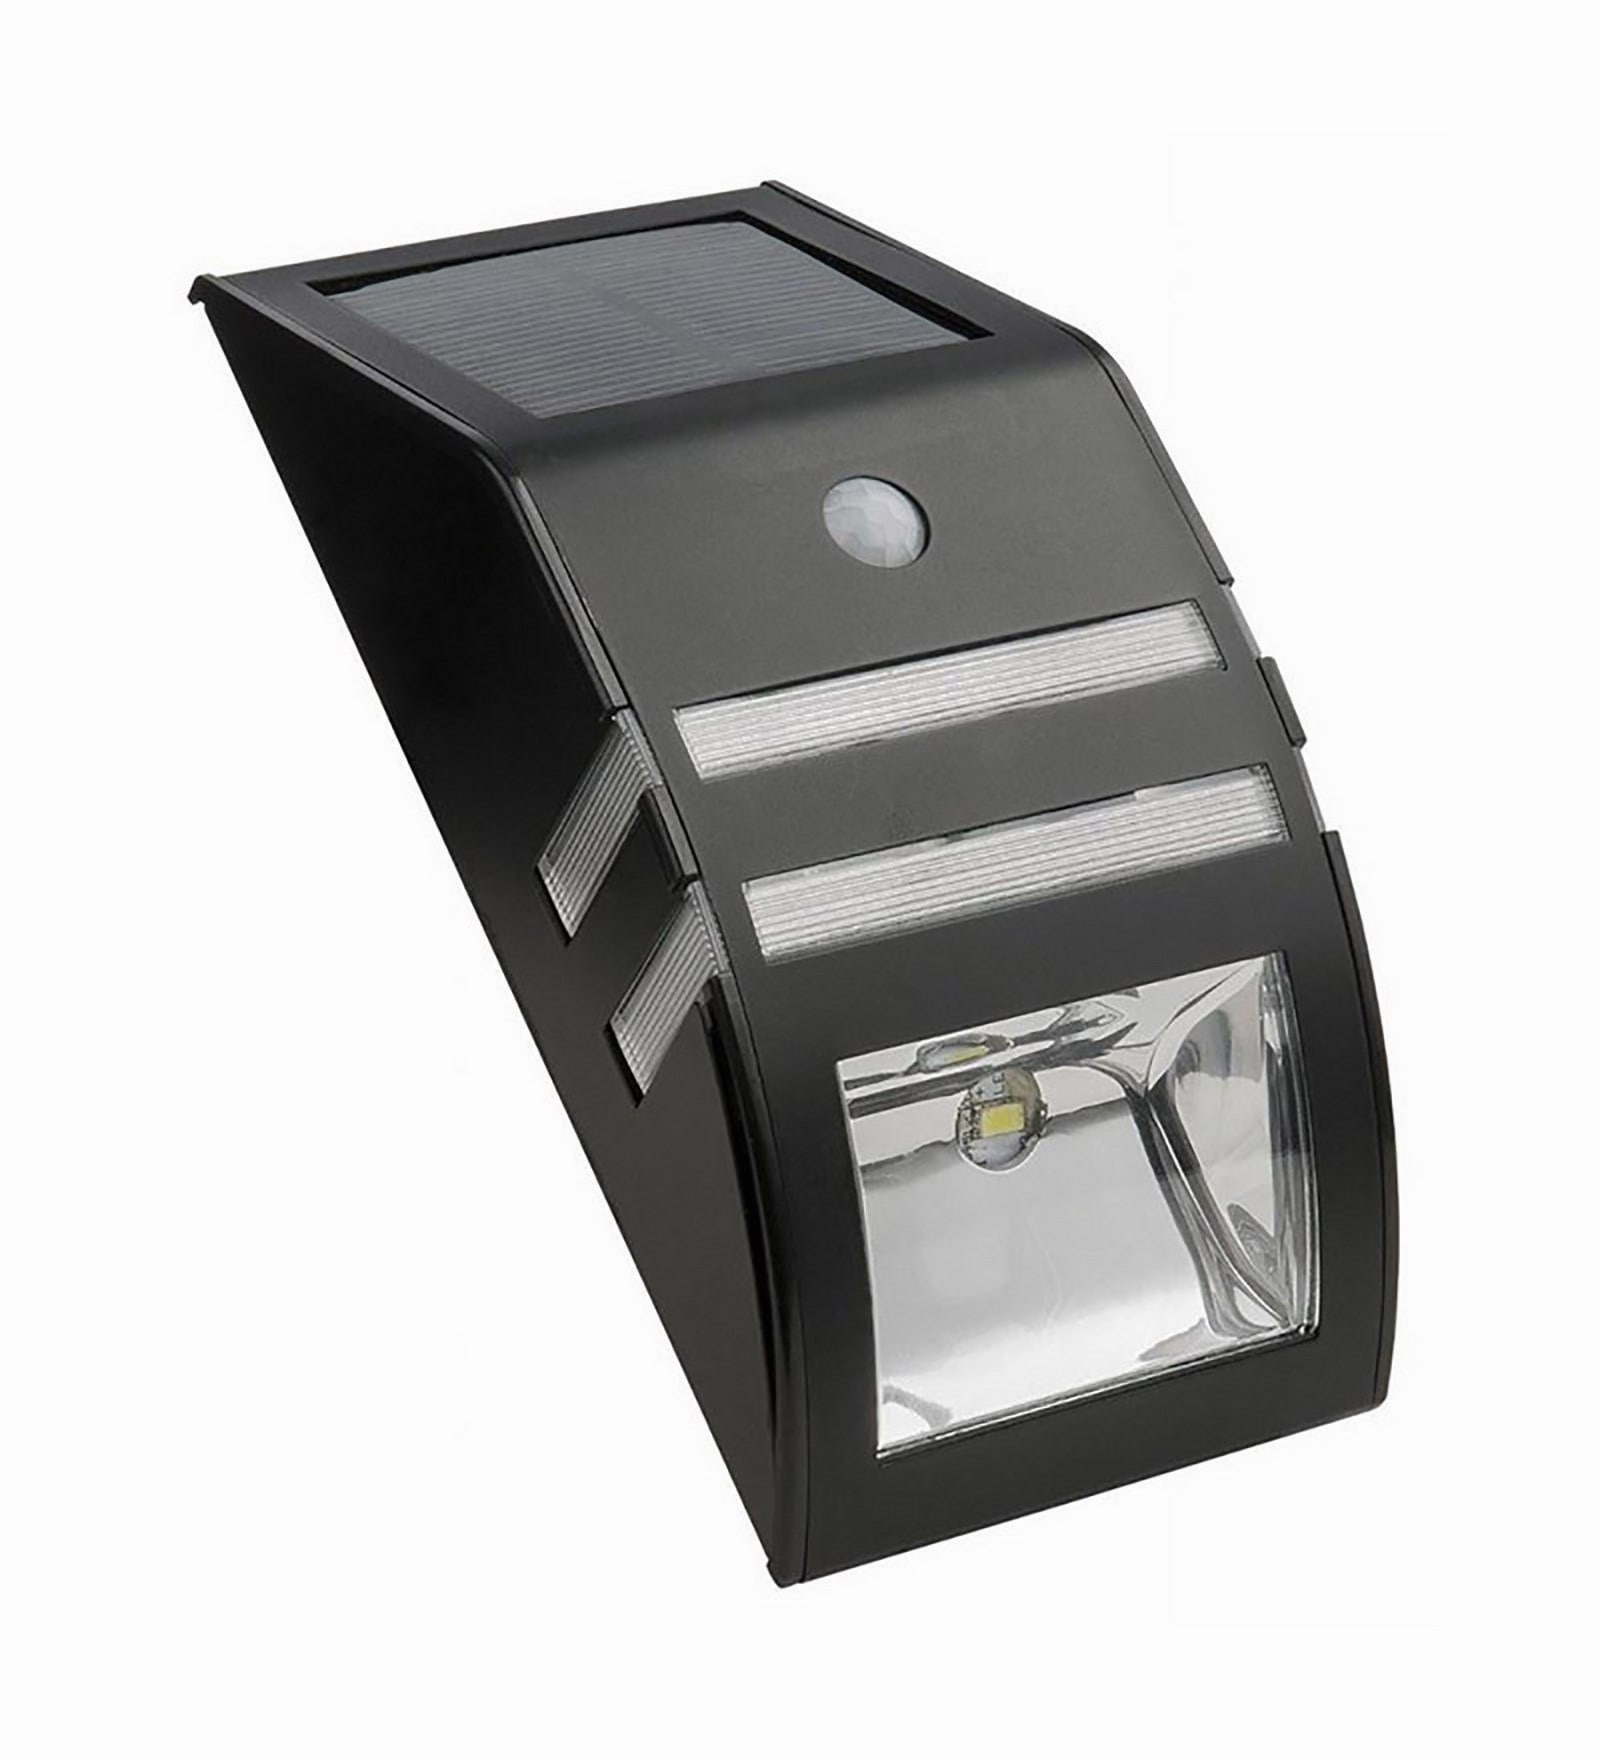 Solar Black Solar Wall Light with Motion Sensor by Quace